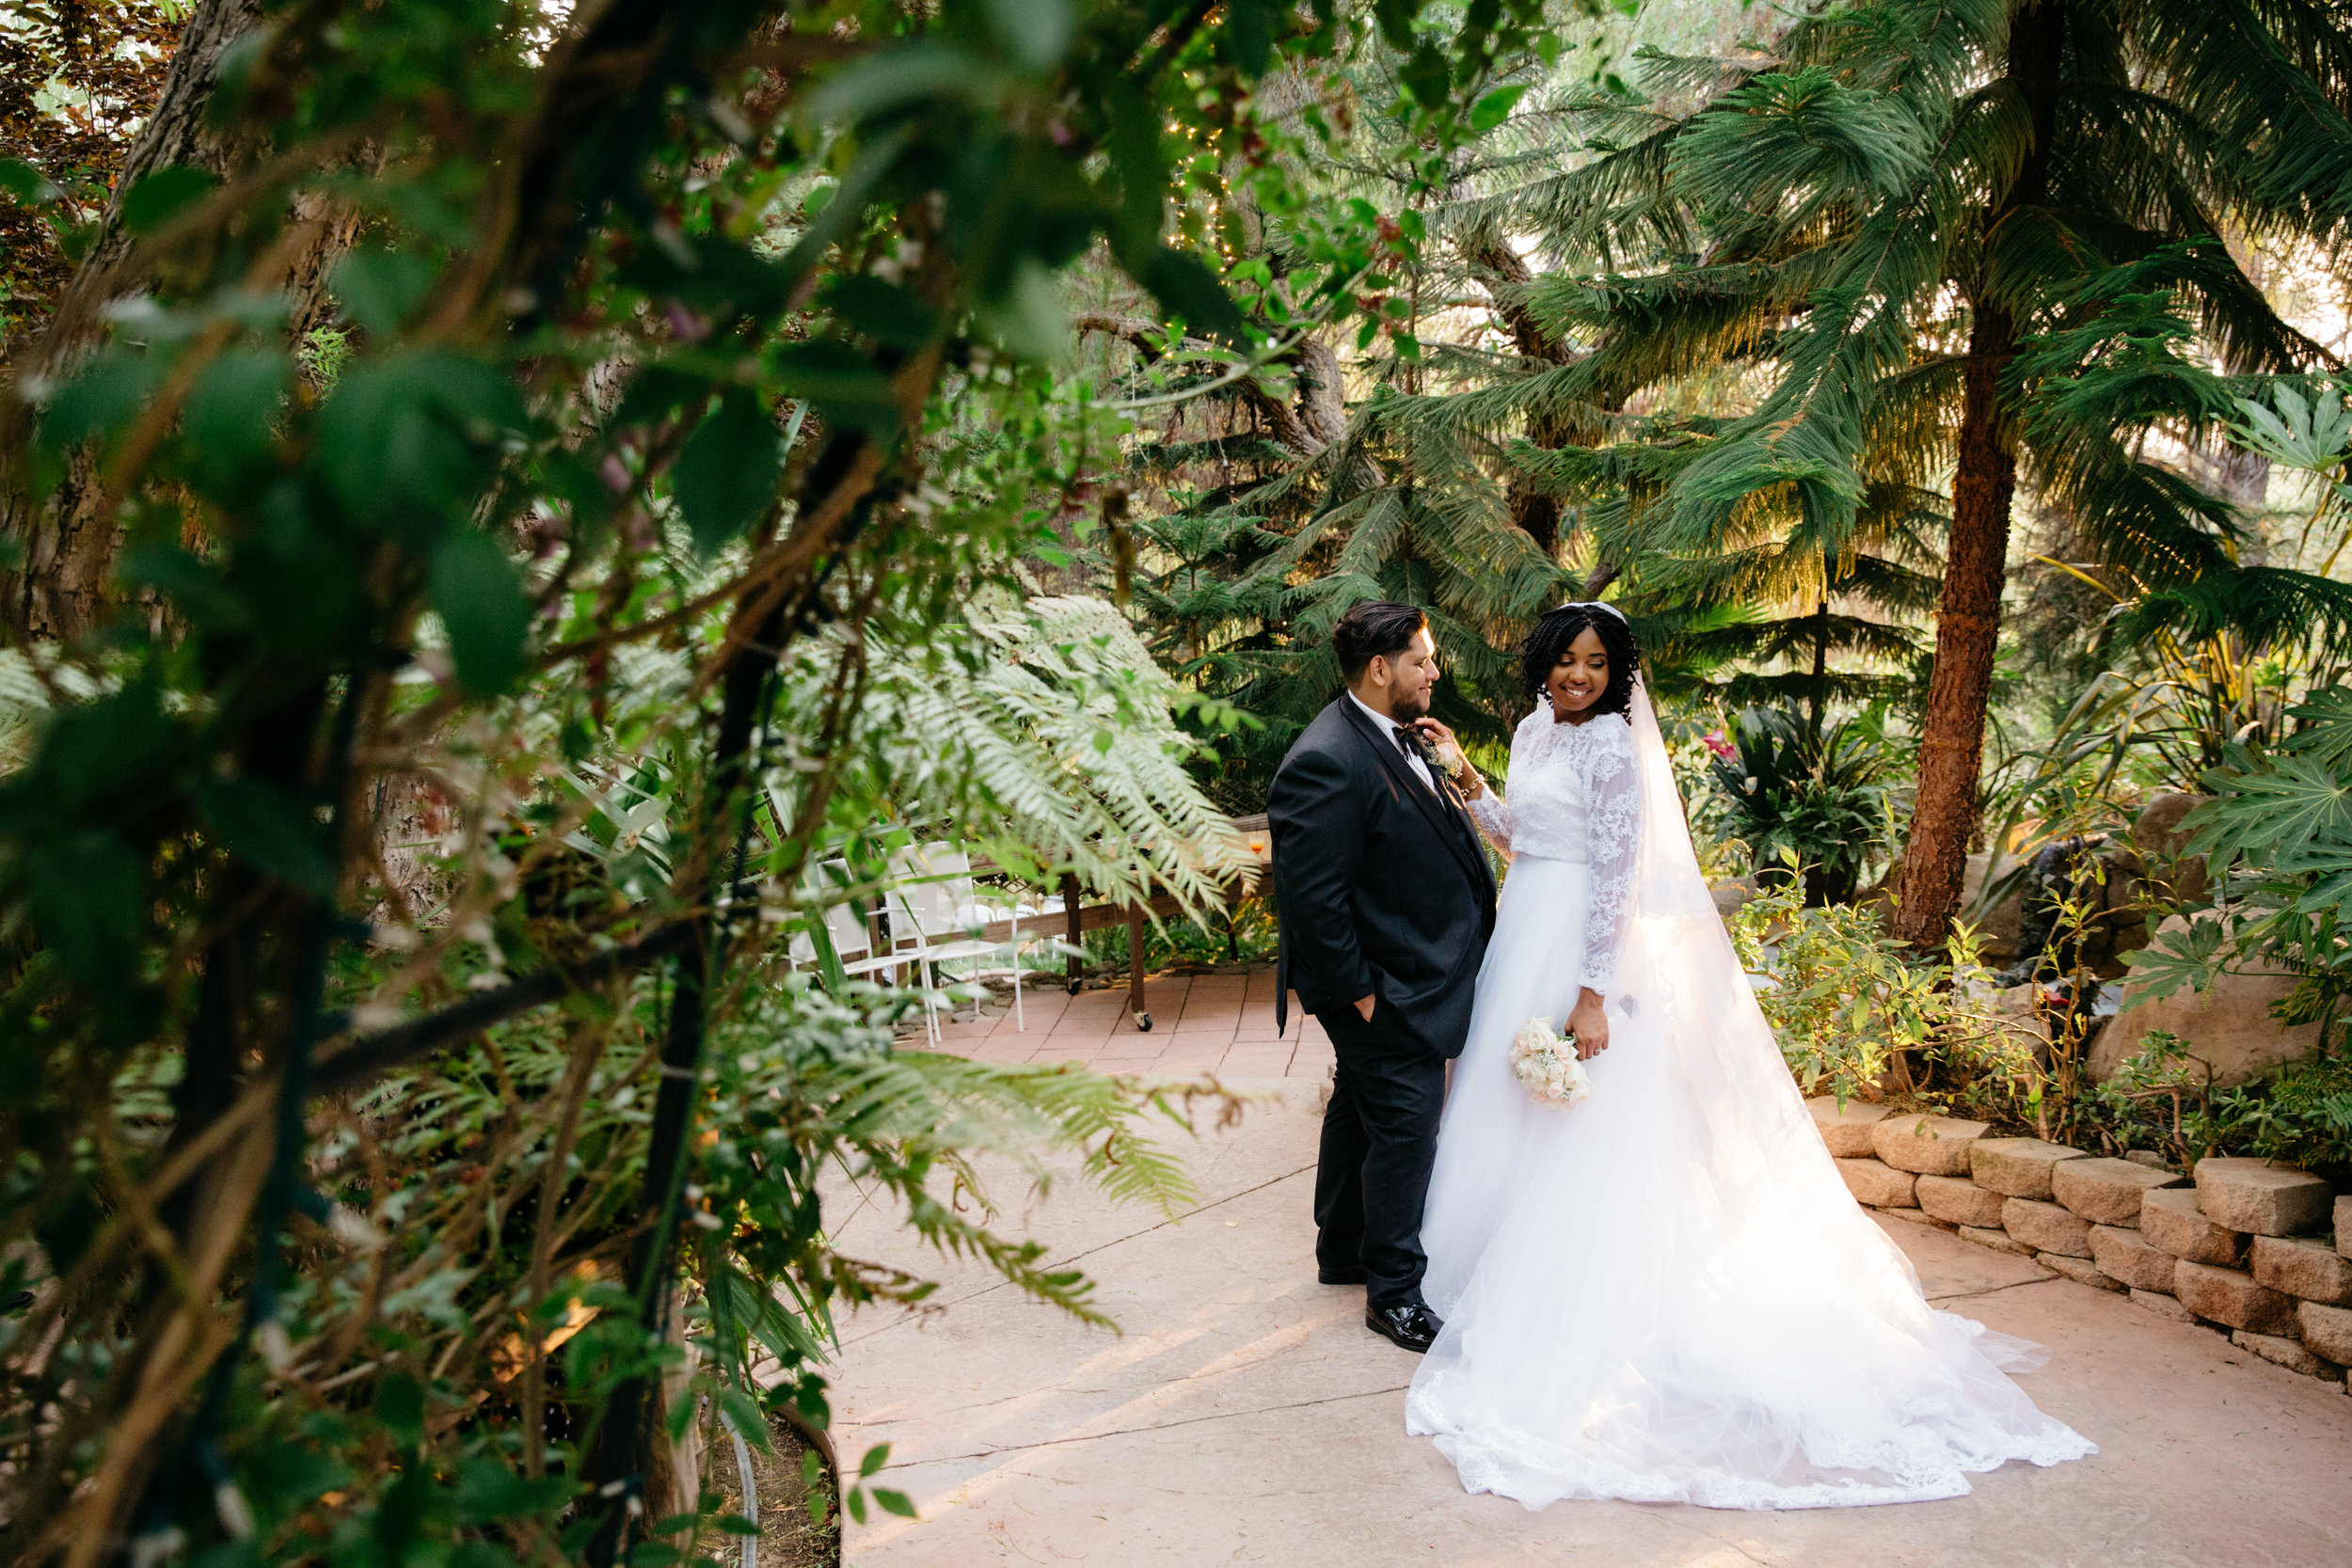 The Vineyard Wedding Jenna Bells and Laces Photography-41.jpg